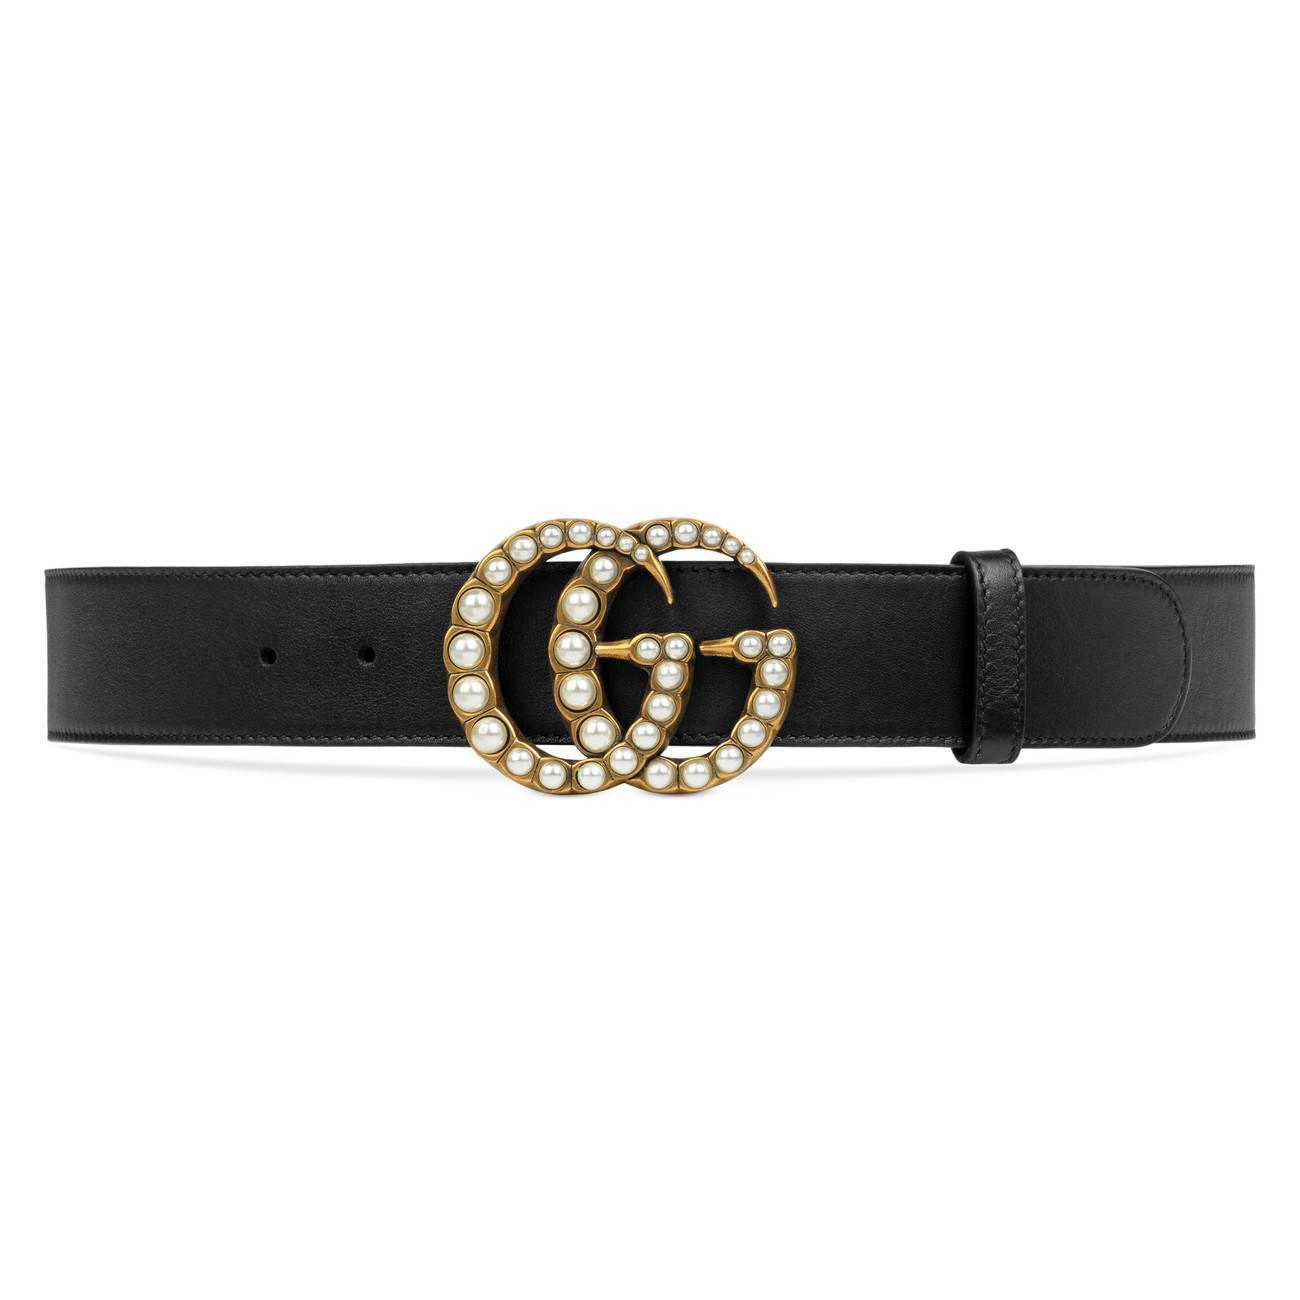 ac59f5682e3 Lyst - Gucci Leather Belt With Pearl Double G in Black - Save 7%